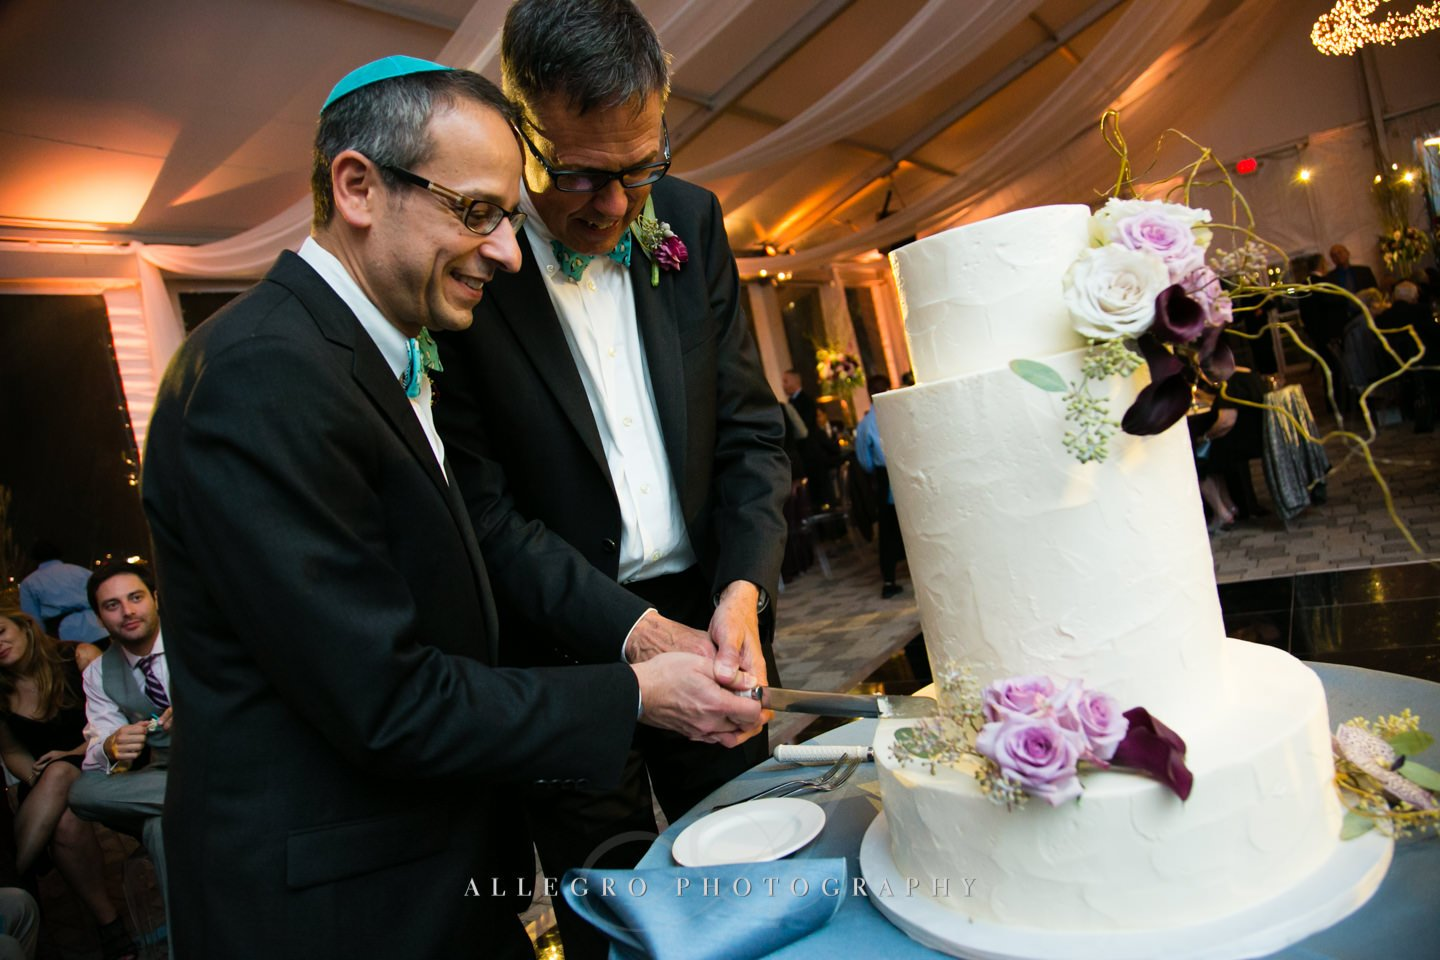 cake cutting - photo by Allegro Photography